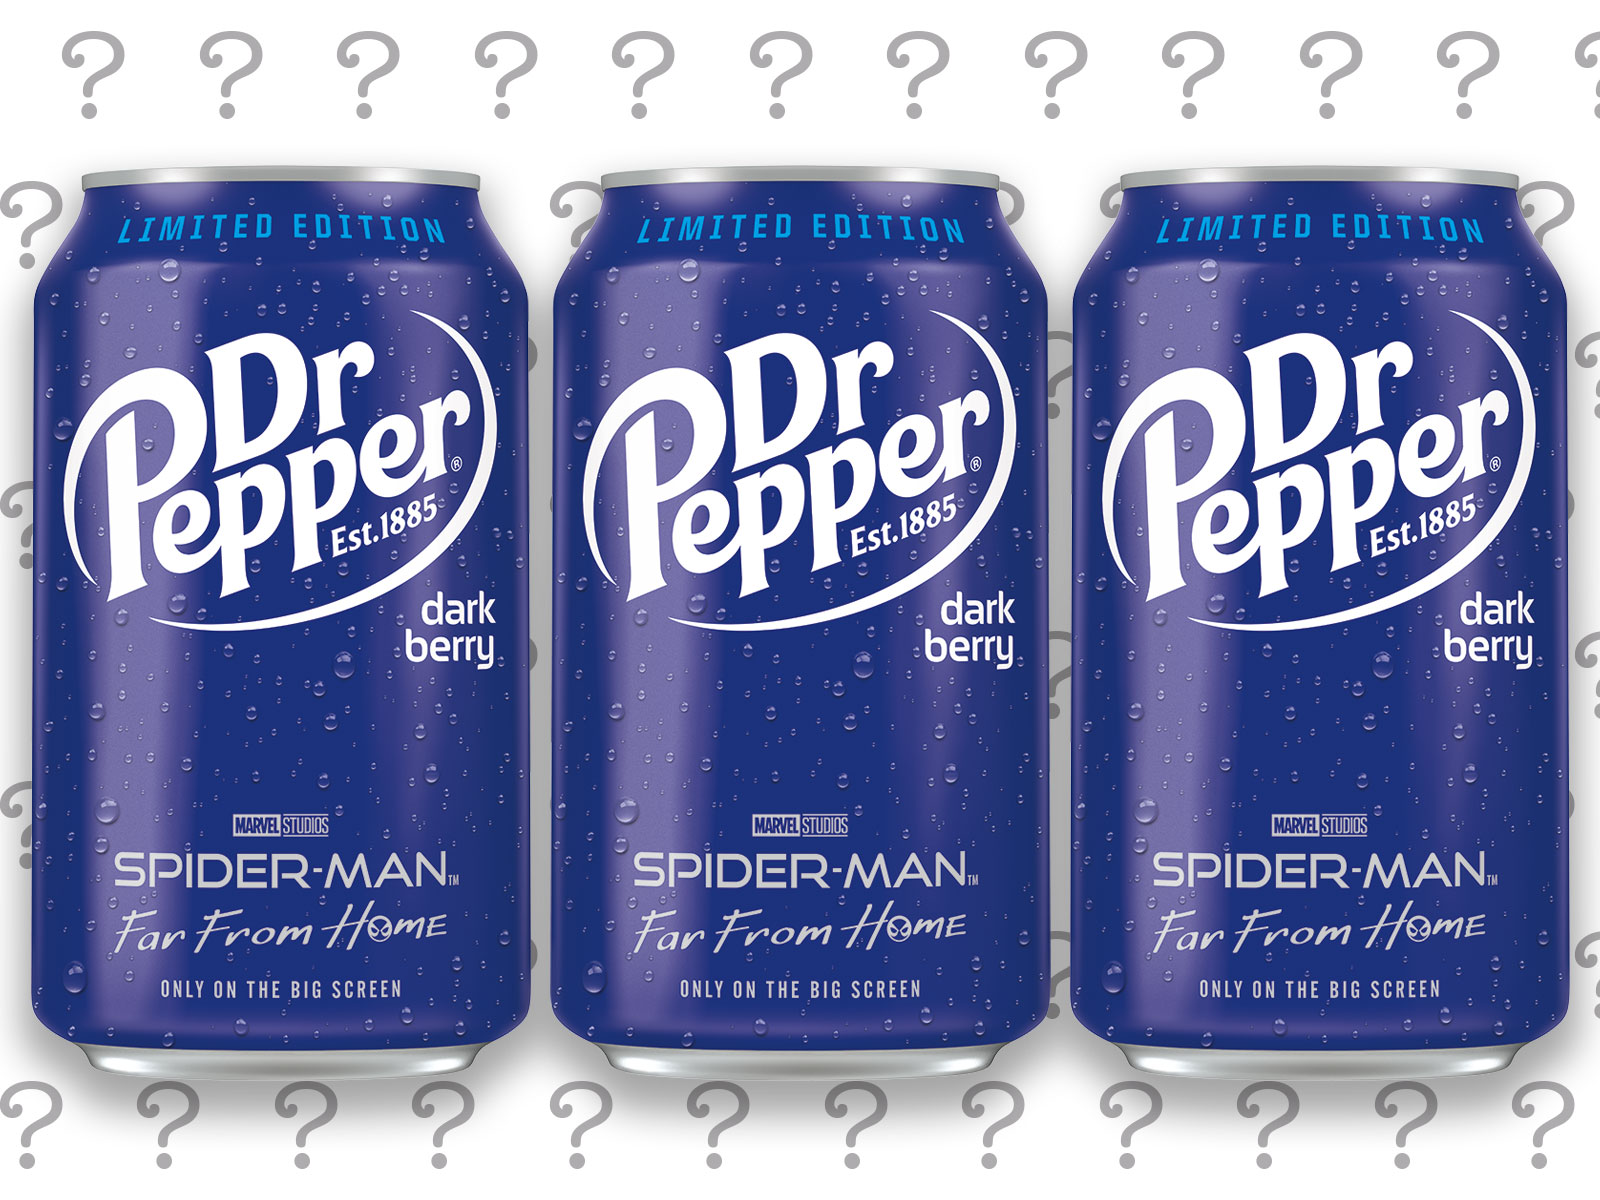 dr-pepper-dark-berry-FT-BLOG0419.jpg